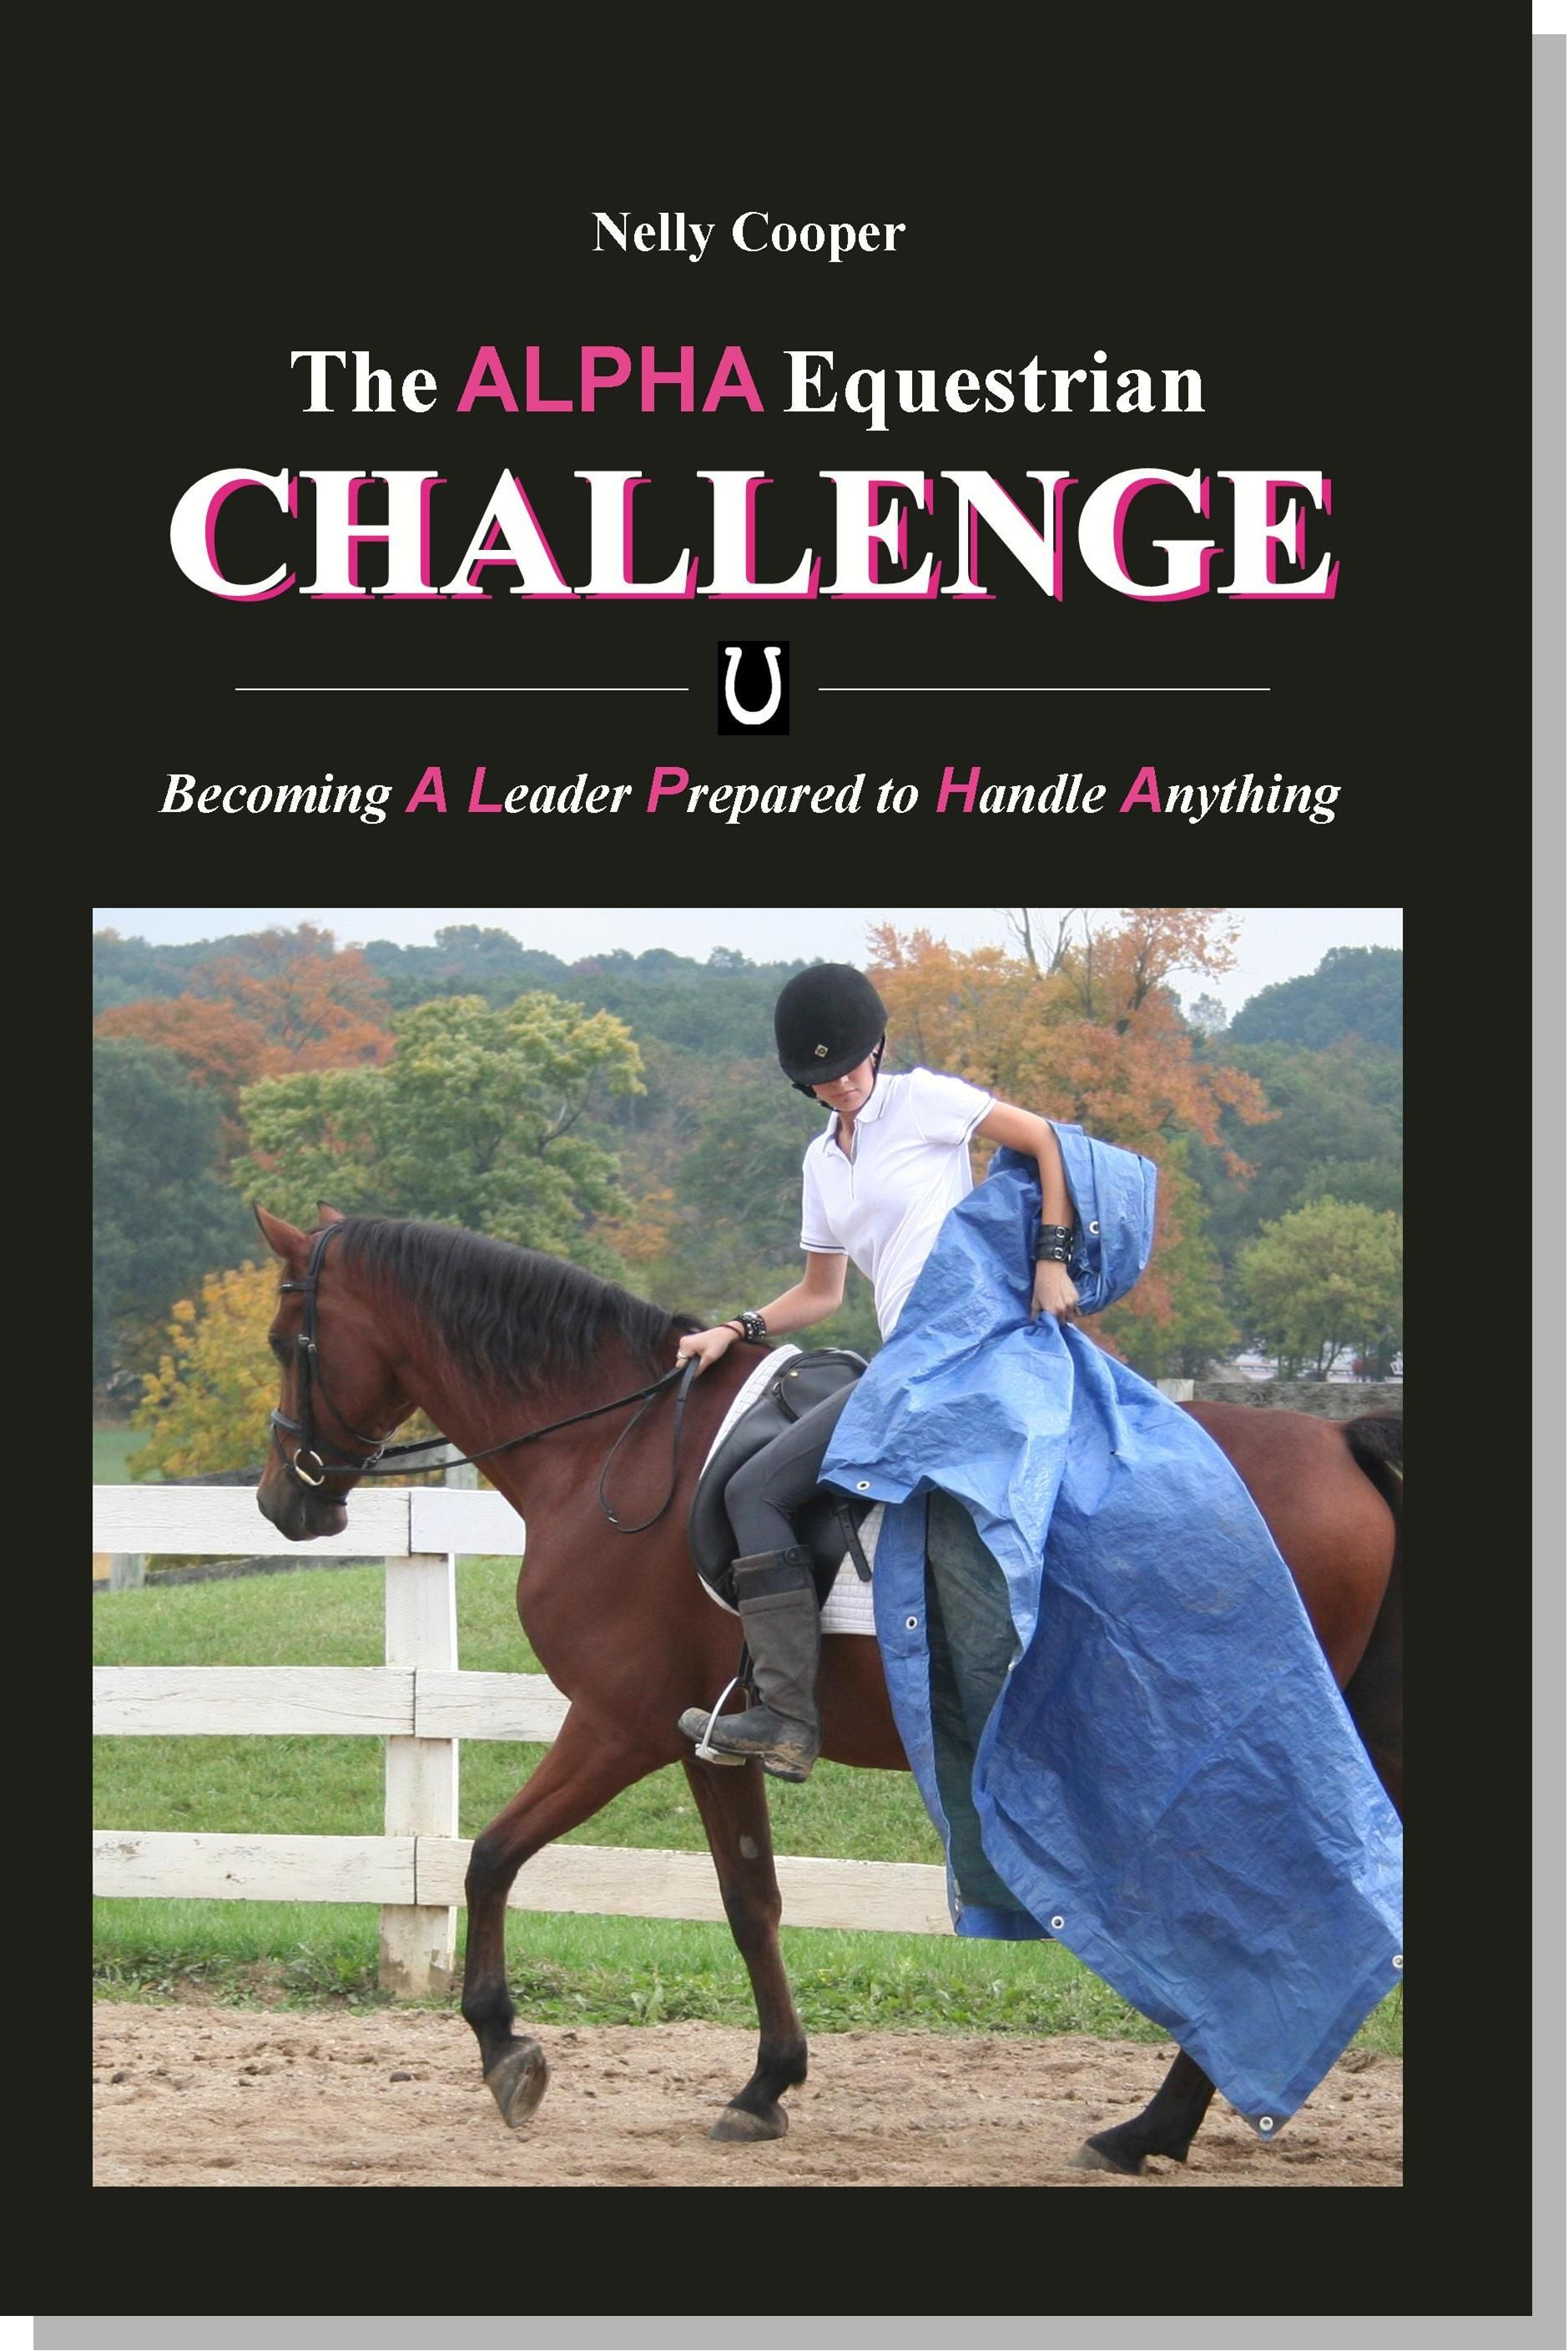 The Alpha Equestrian Challenge Helps Riding Instructors